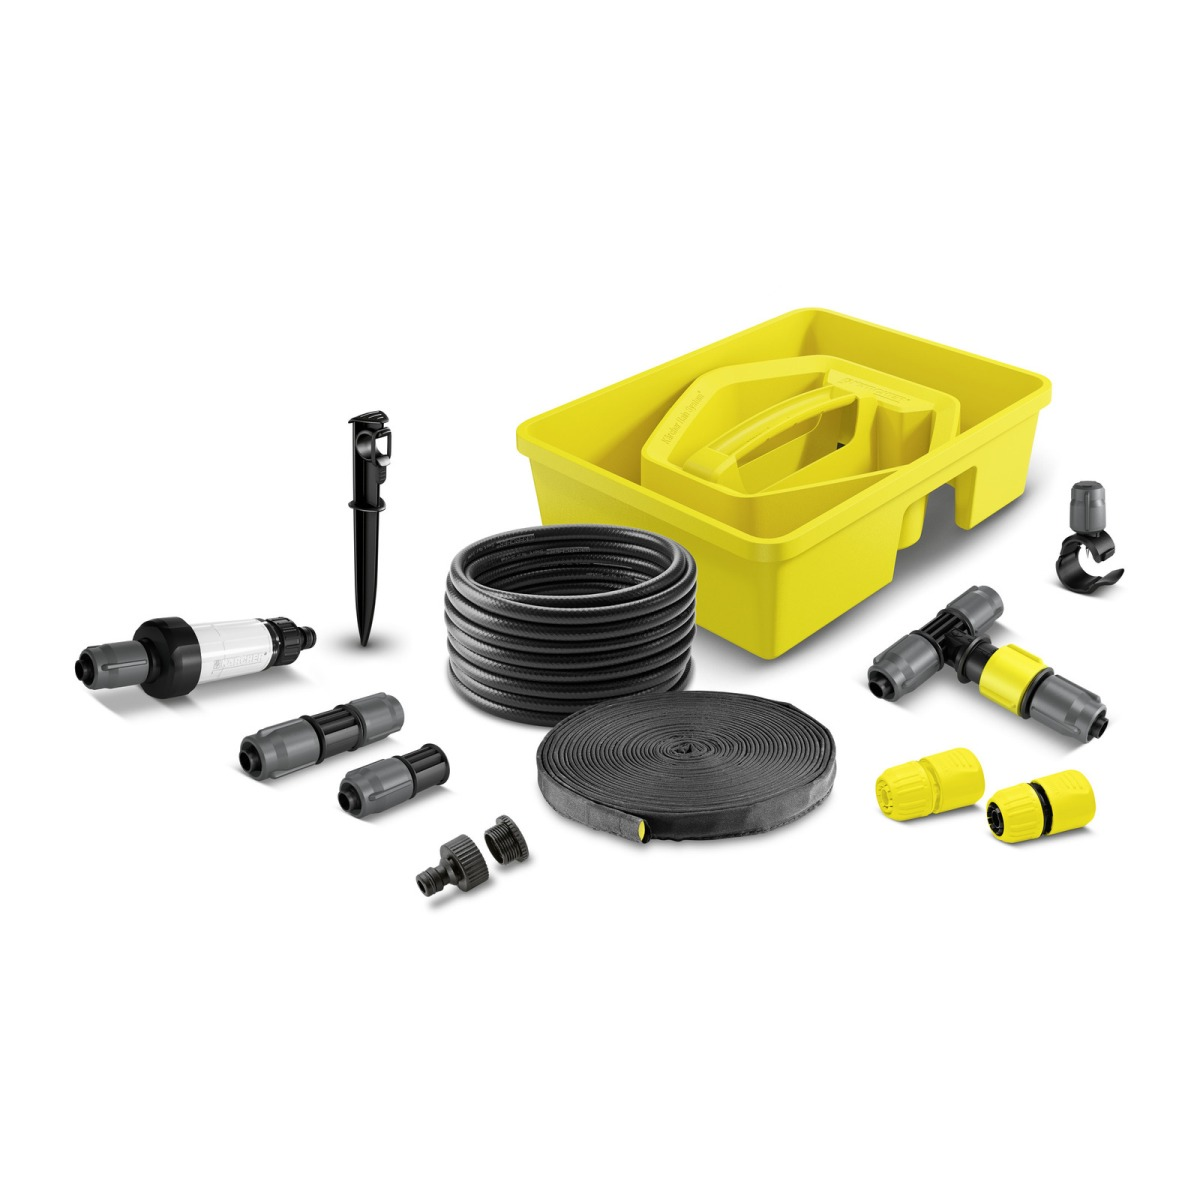 Set watering KARCHER Rain System (2.645-238) (15 m length, diameter 1/2 inch adjustable water pressure, excellent